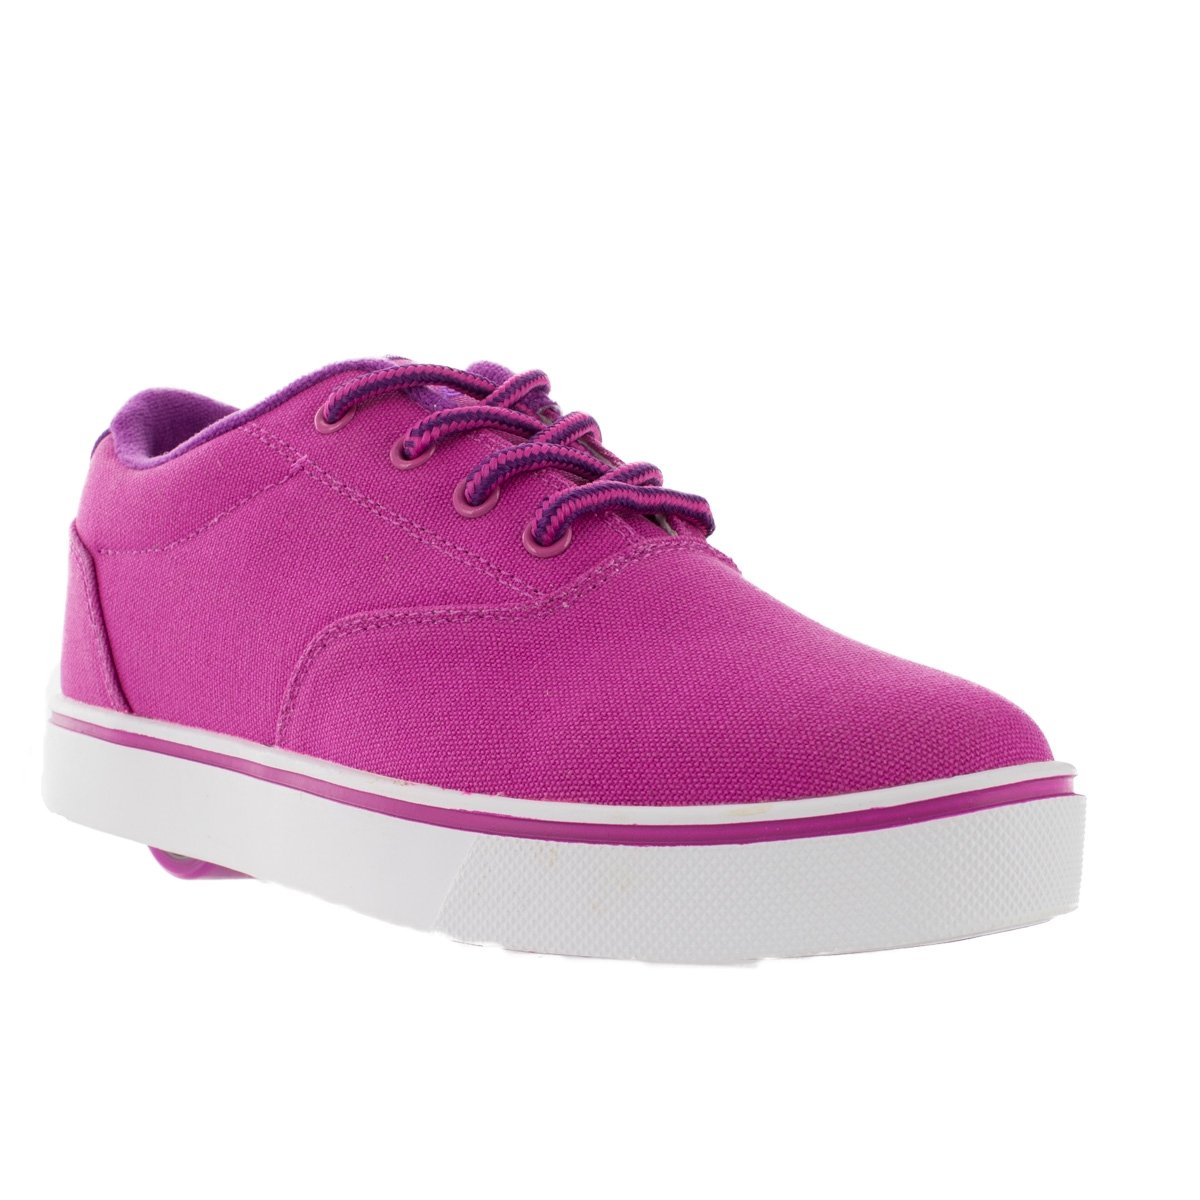 Heelys 771020W Womens Launch Skate Shoes, Berry/Purple/White - 6 by Heelys (Image #1)